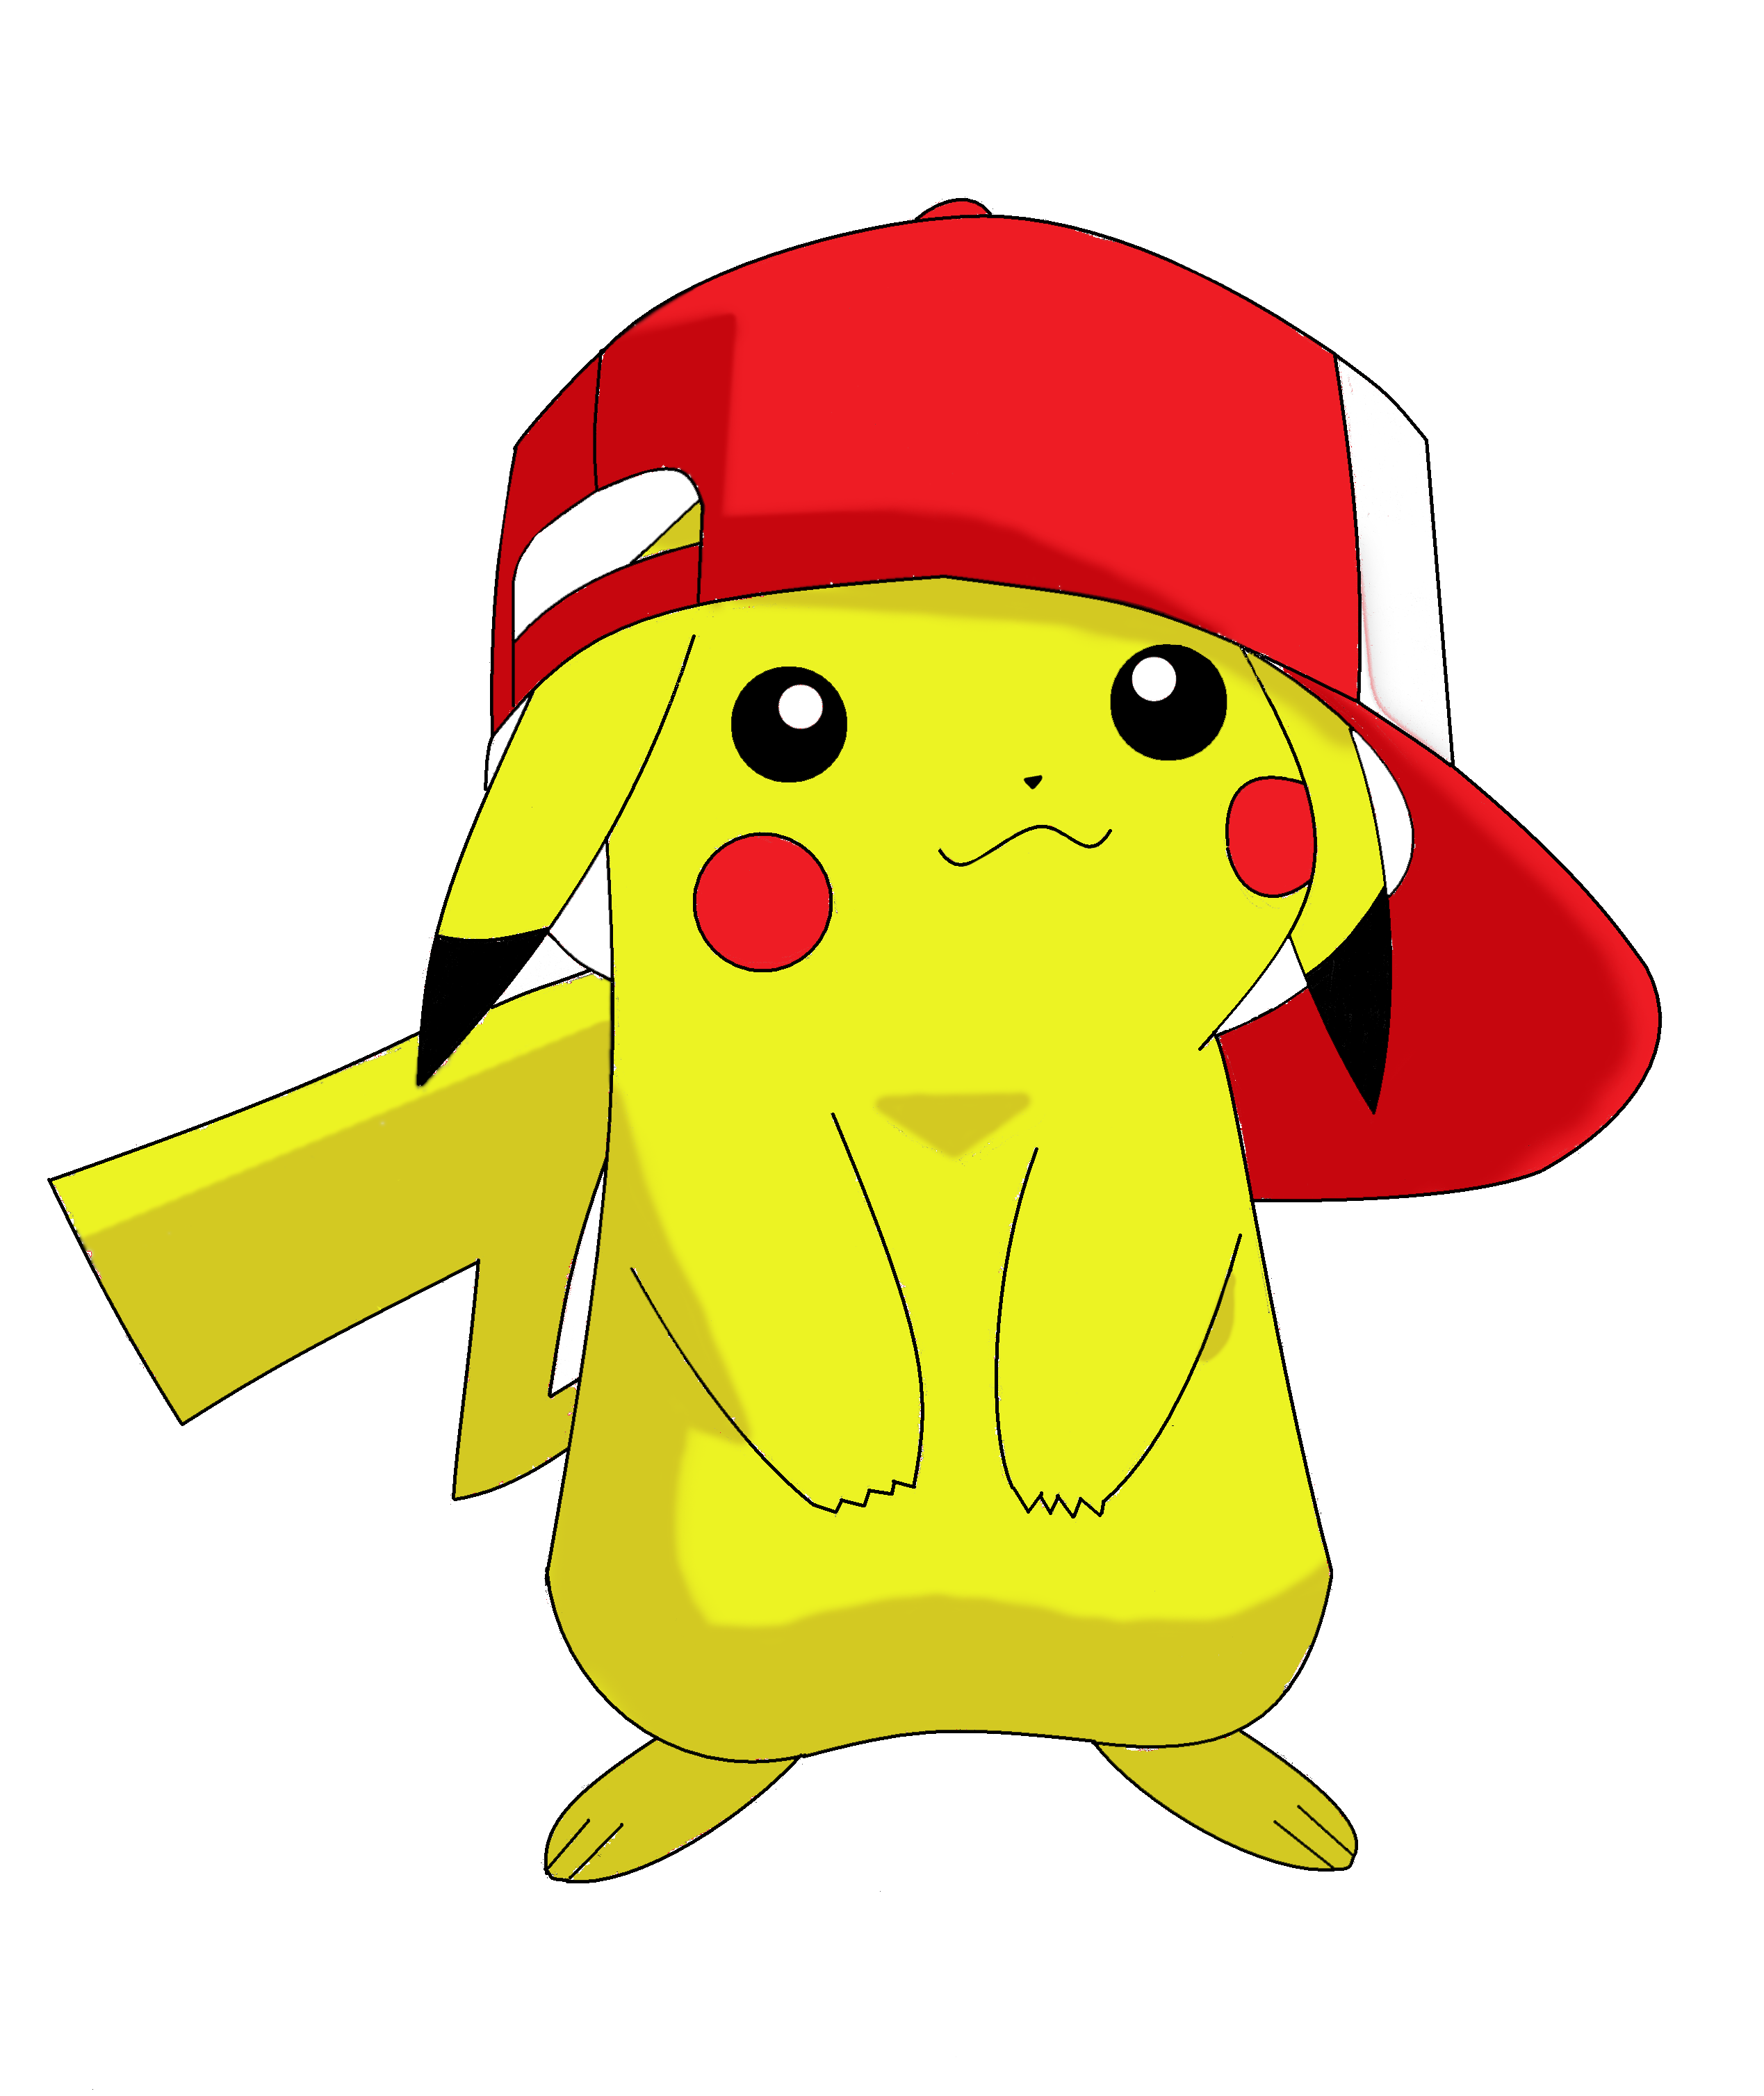 Pokemon pikachu white background wallpaper background 2538x3016